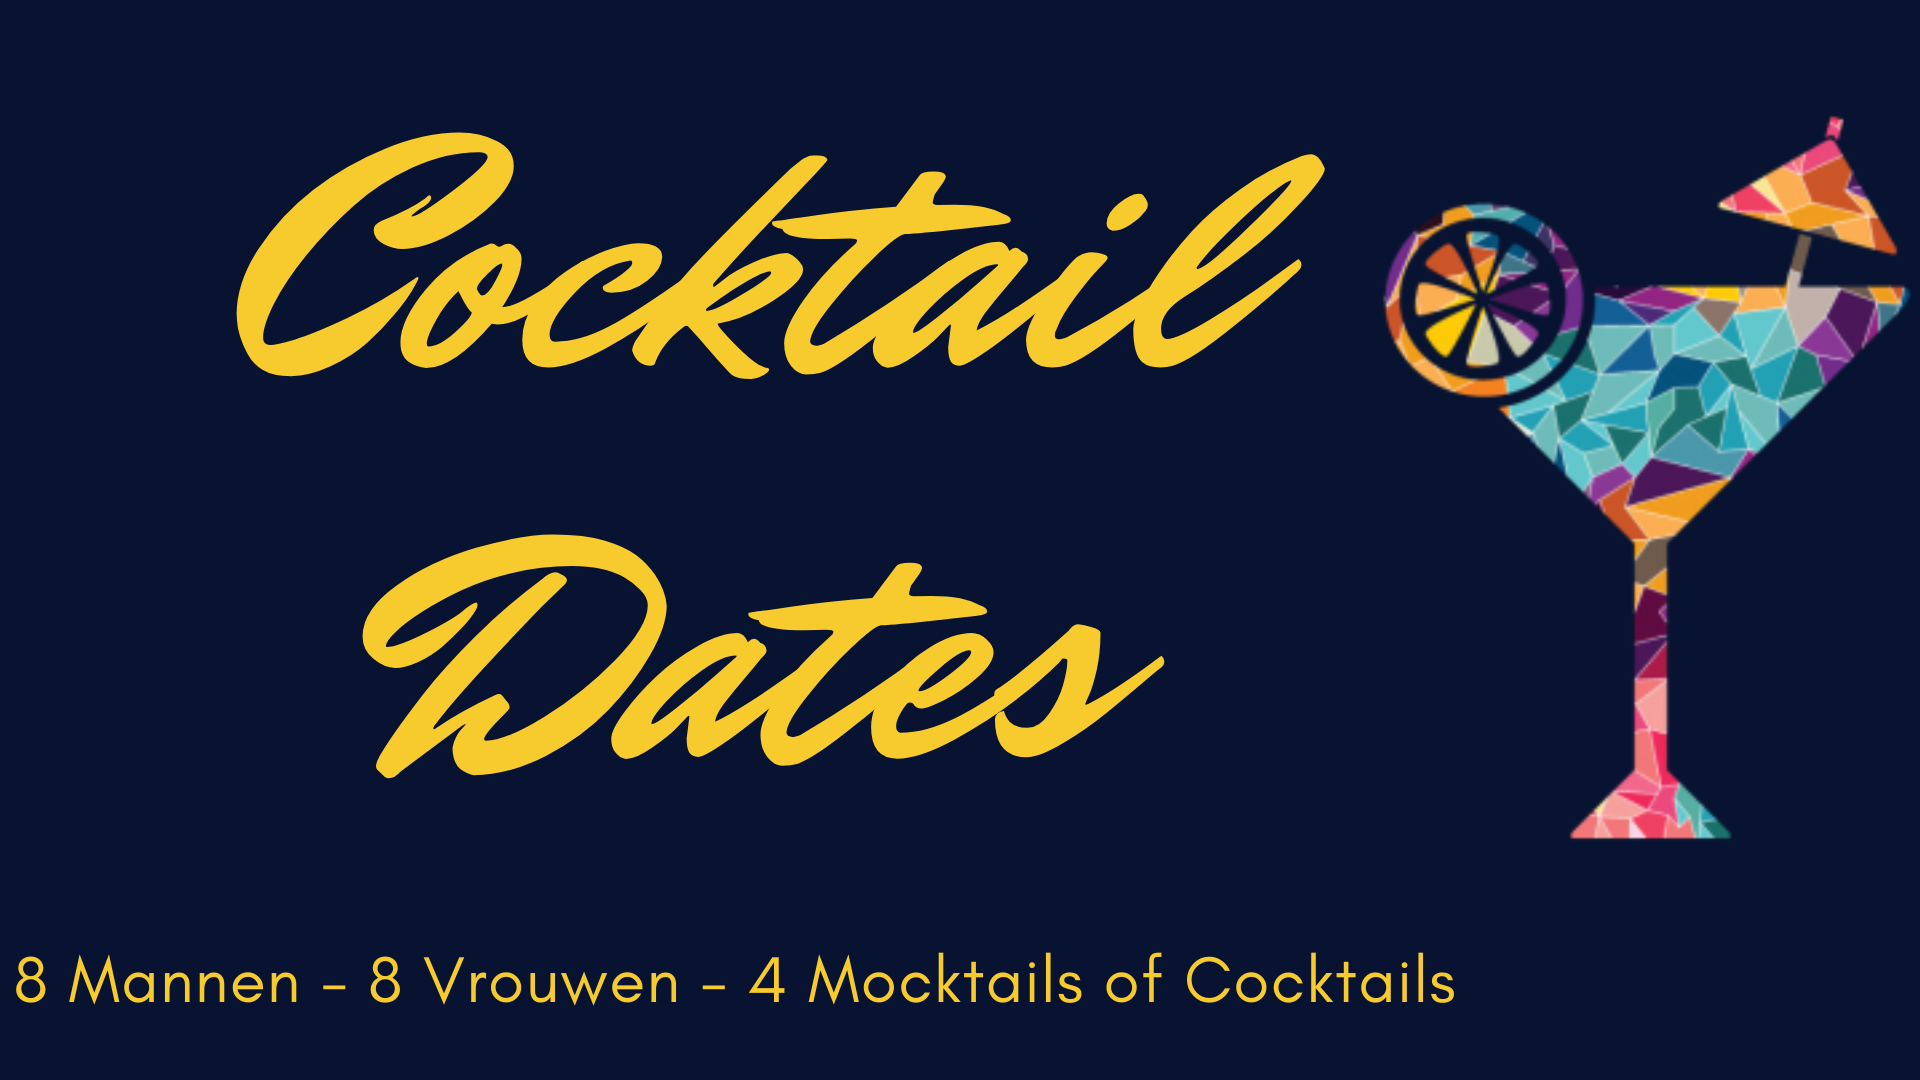 Cocktail dates banner